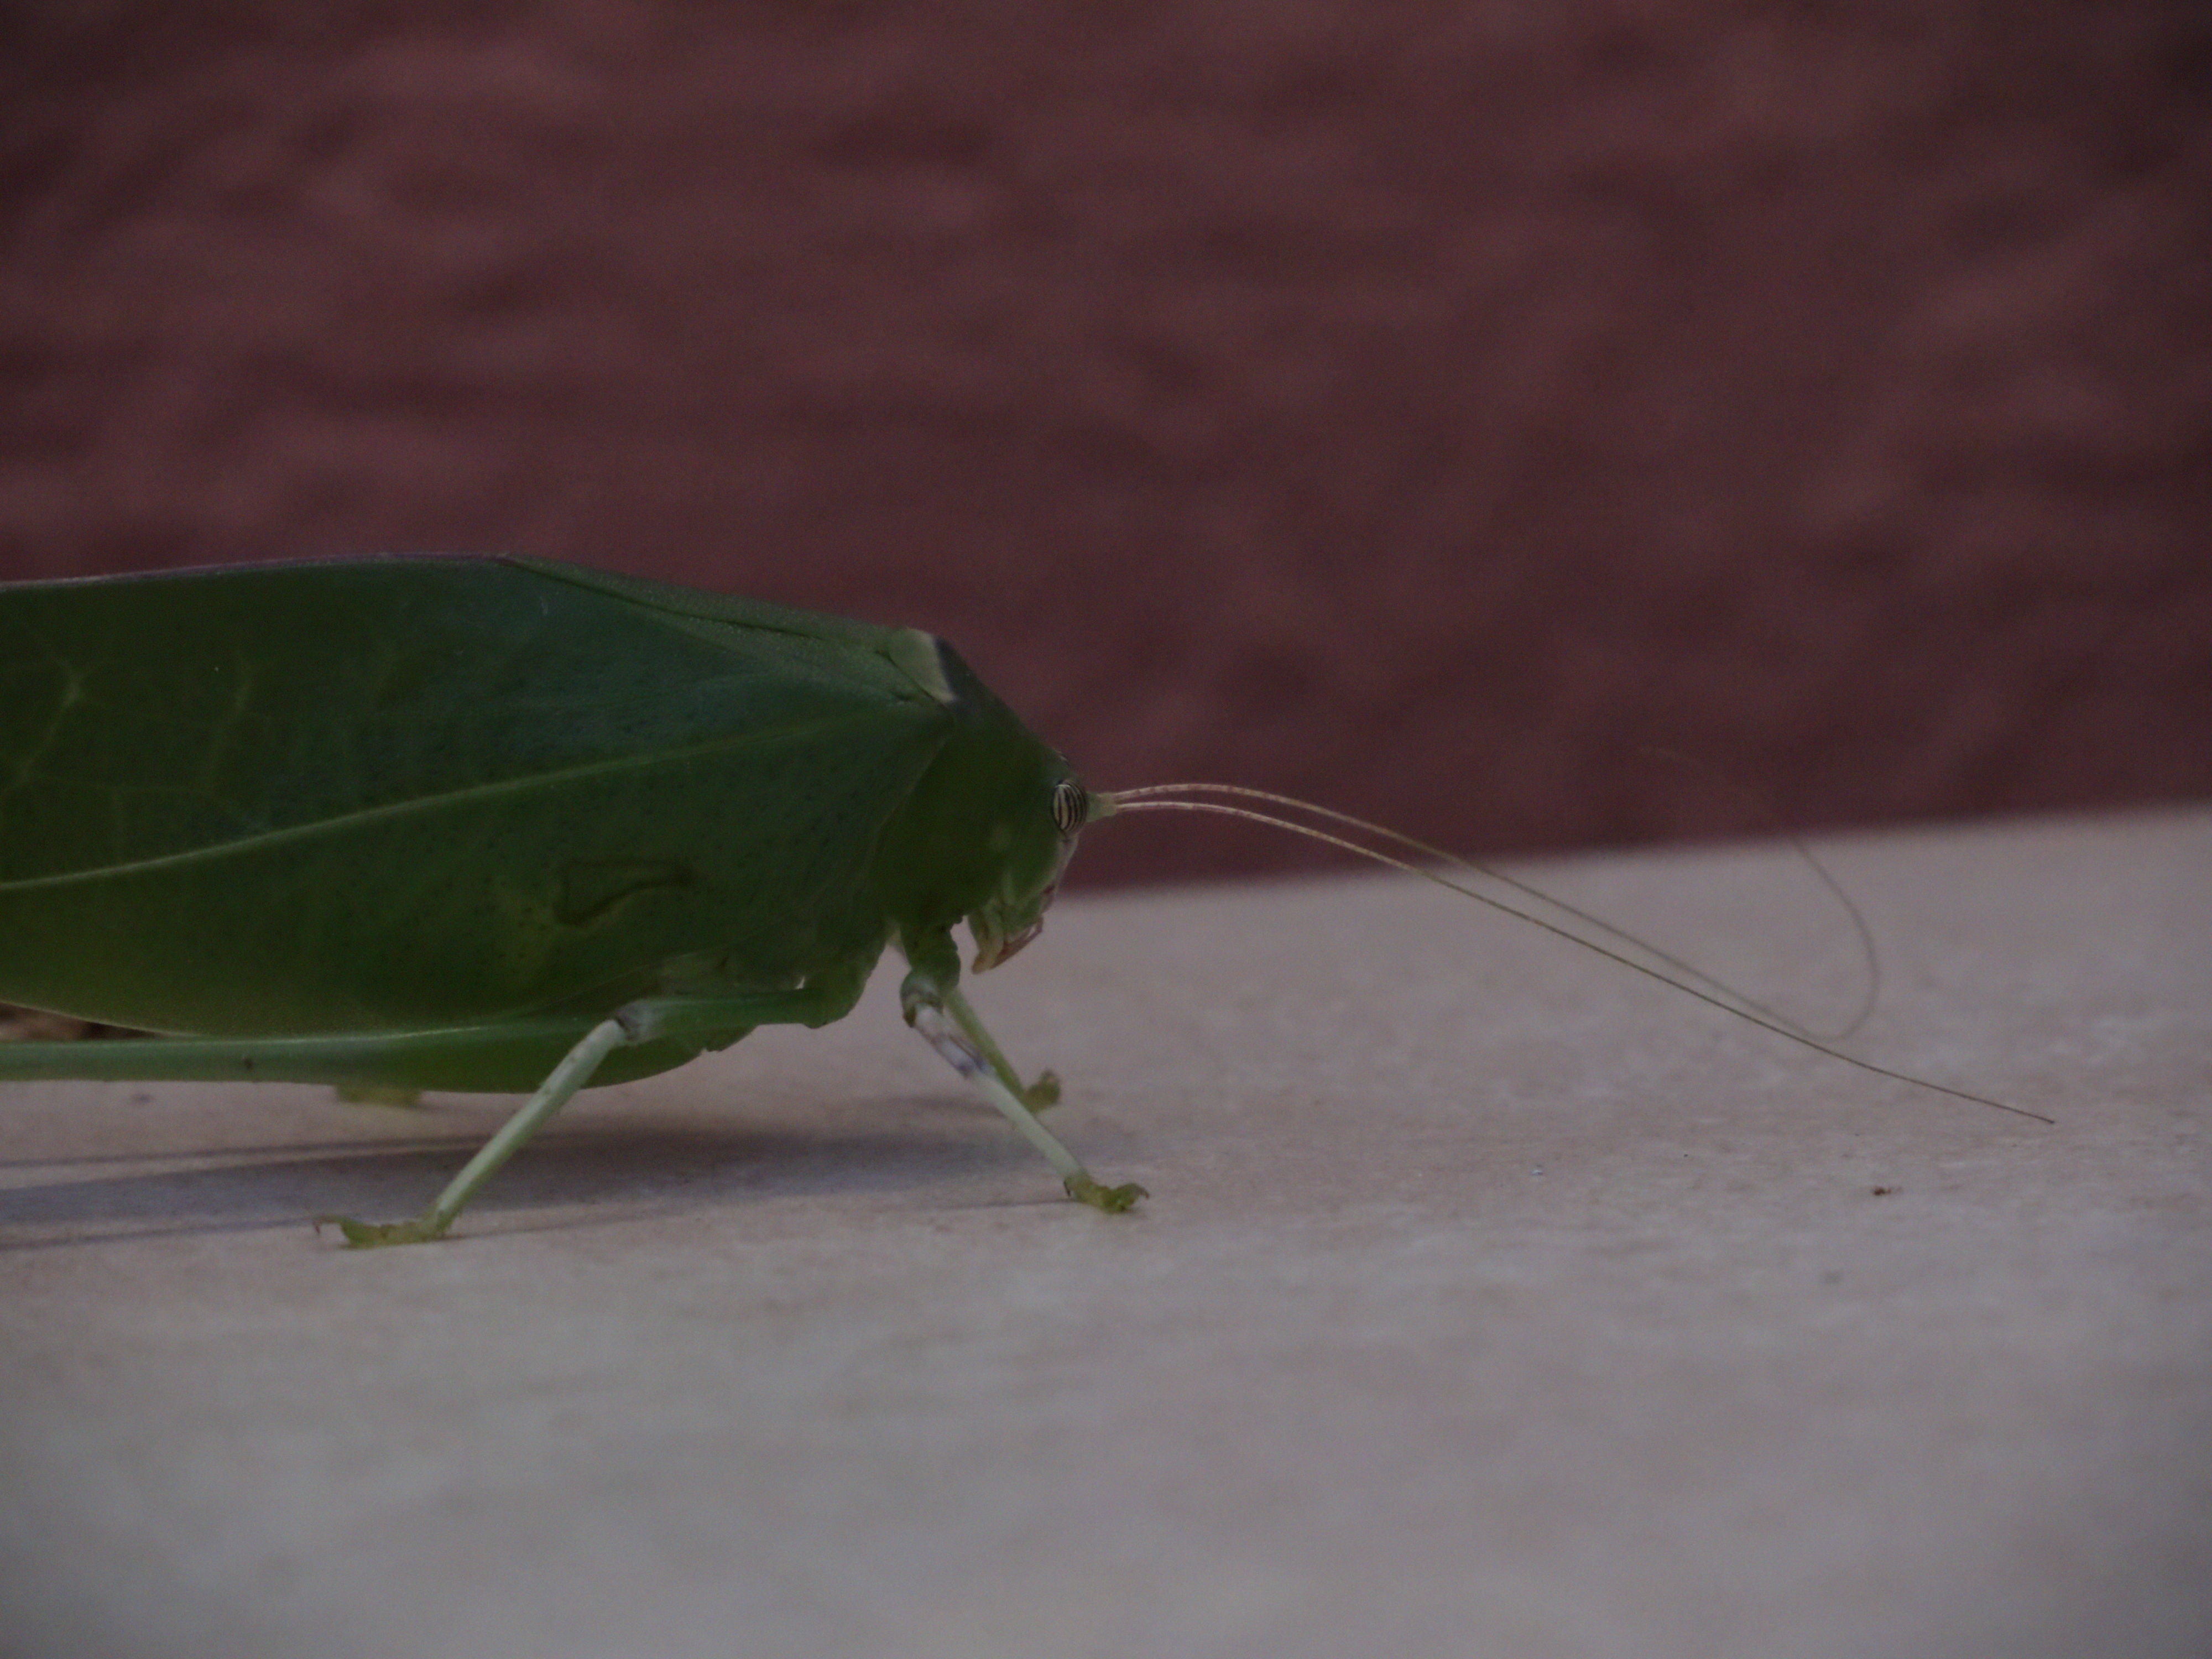 leaf like insect katydid greets us kruger park tours blog. Black Bedroom Furniture Sets. Home Design Ideas